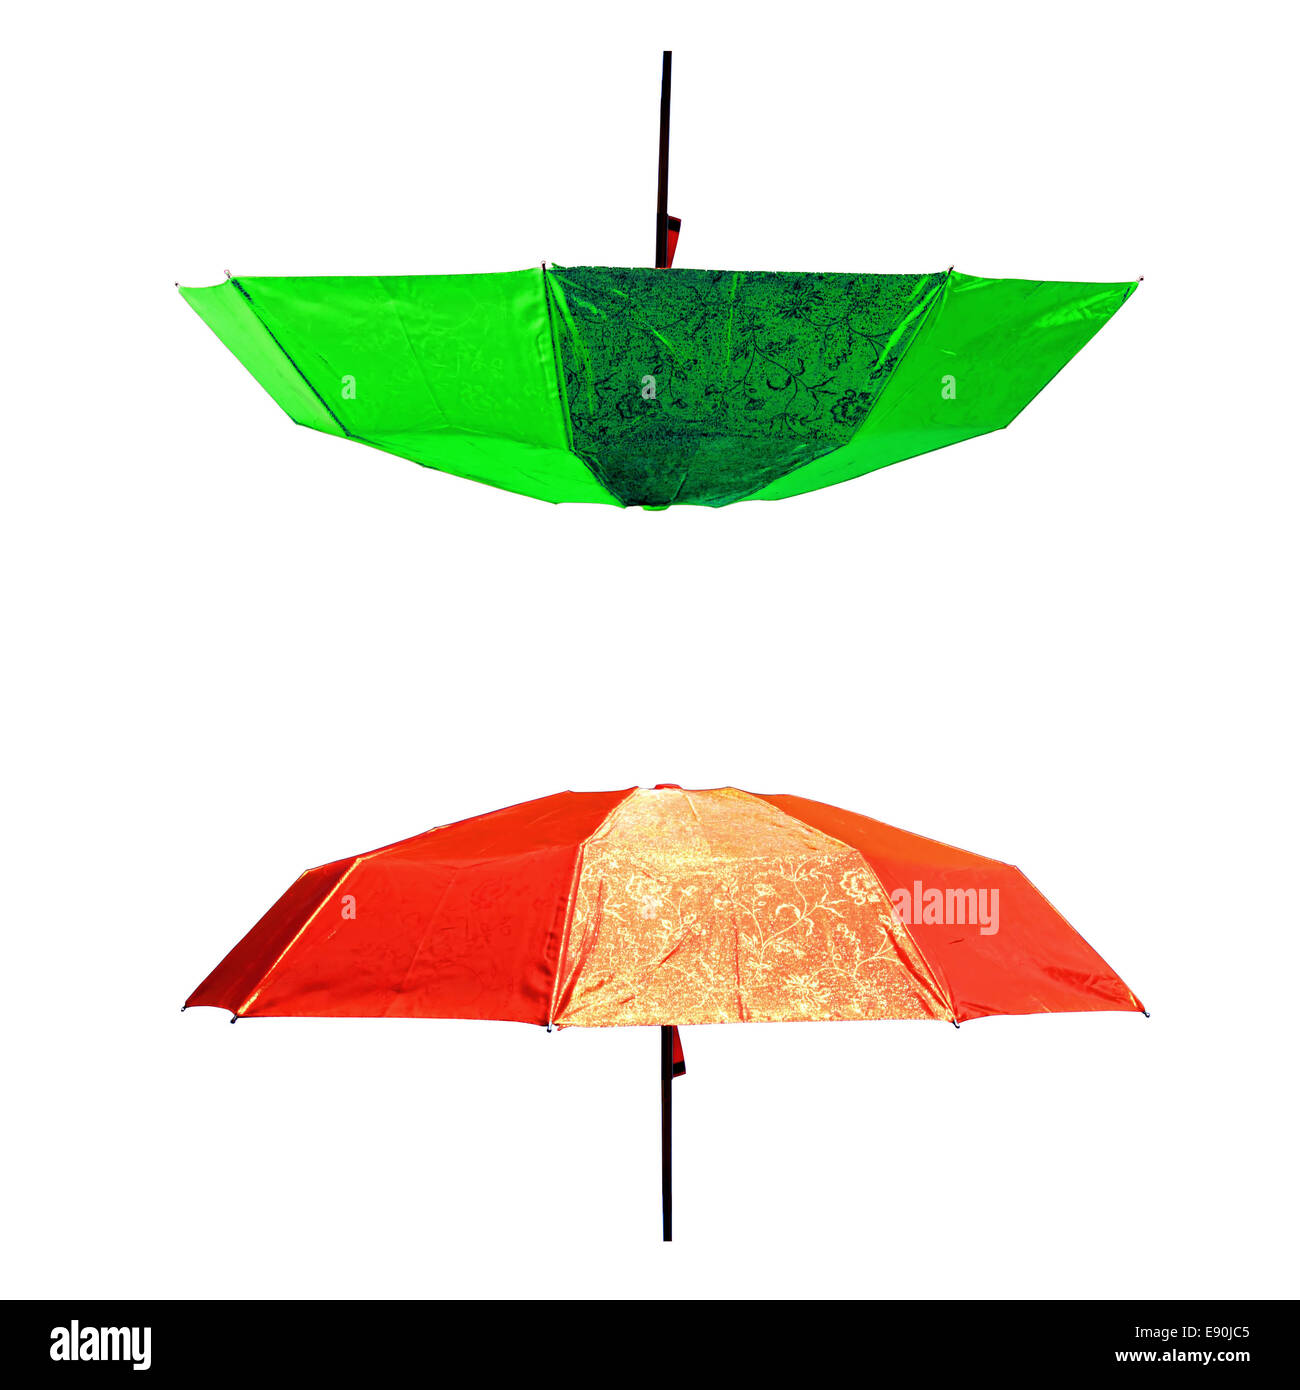 umbrellas on white background - Stock Image